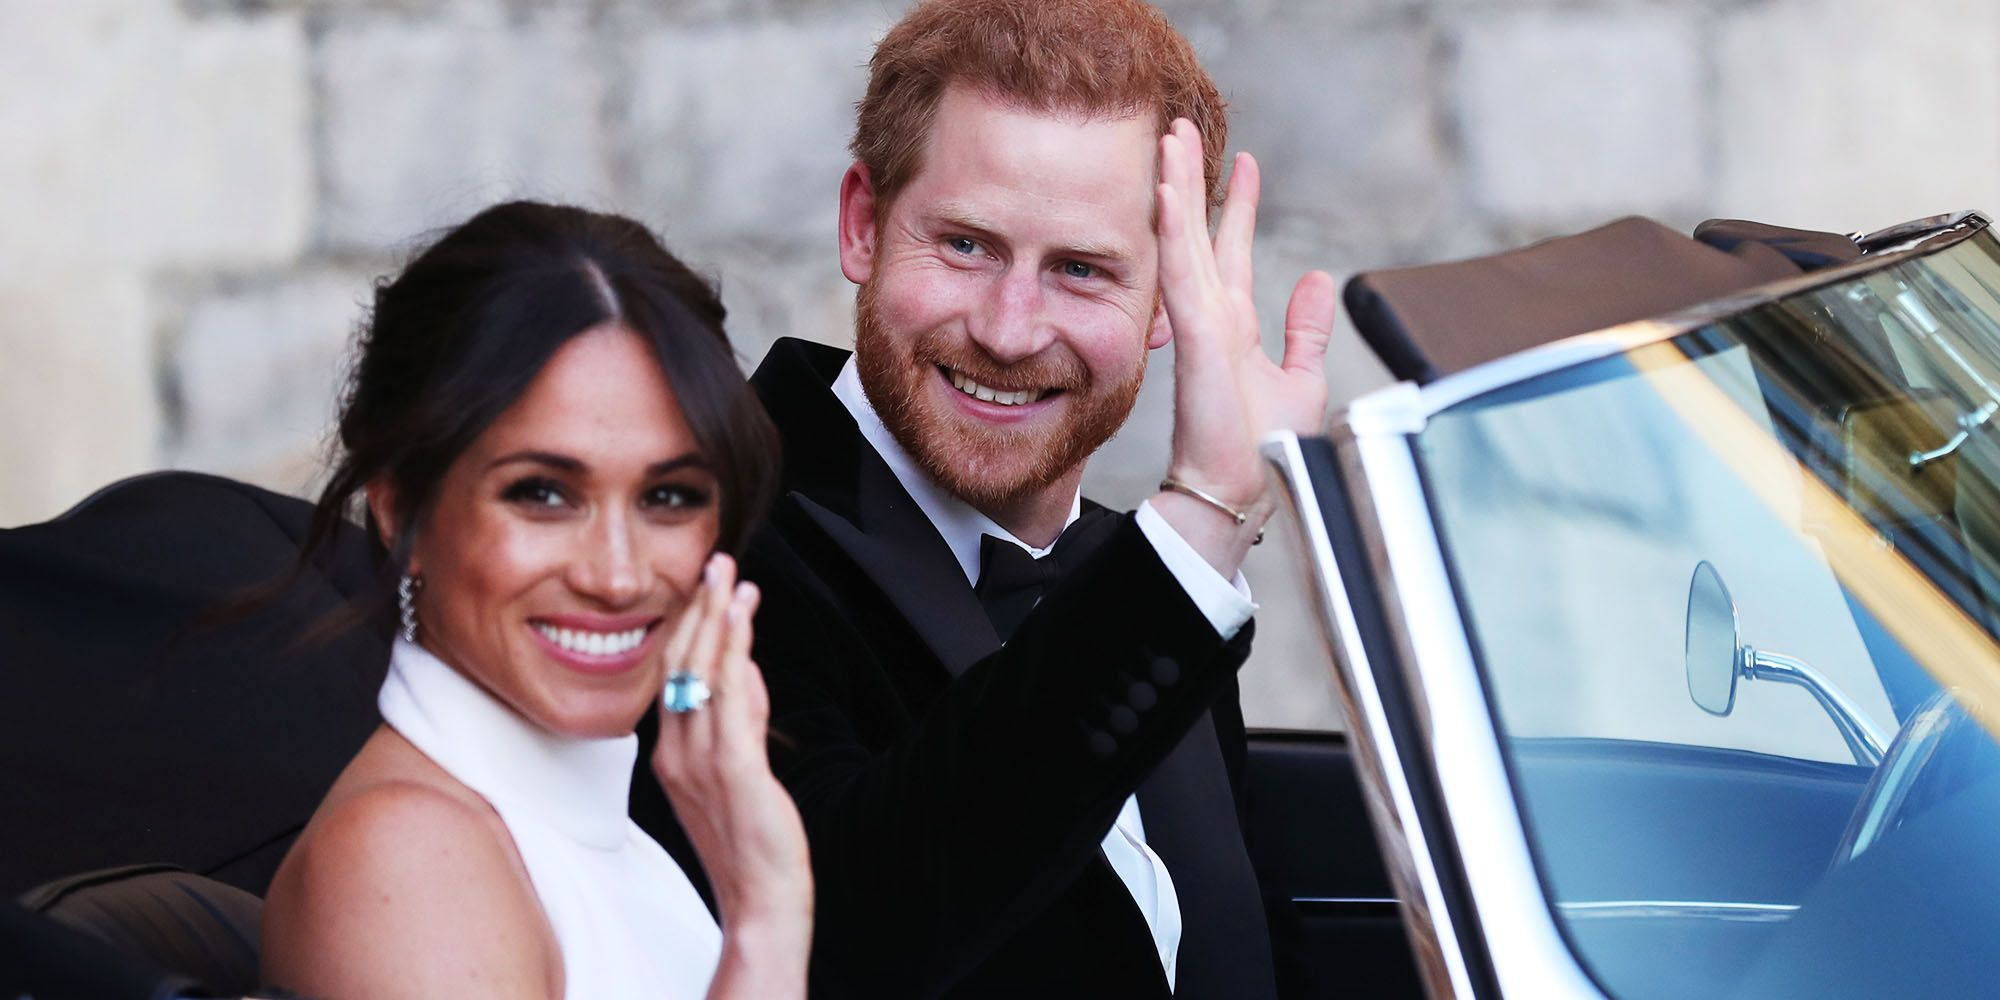 Best Gossip About What Happened Inside Private Royal Wedding